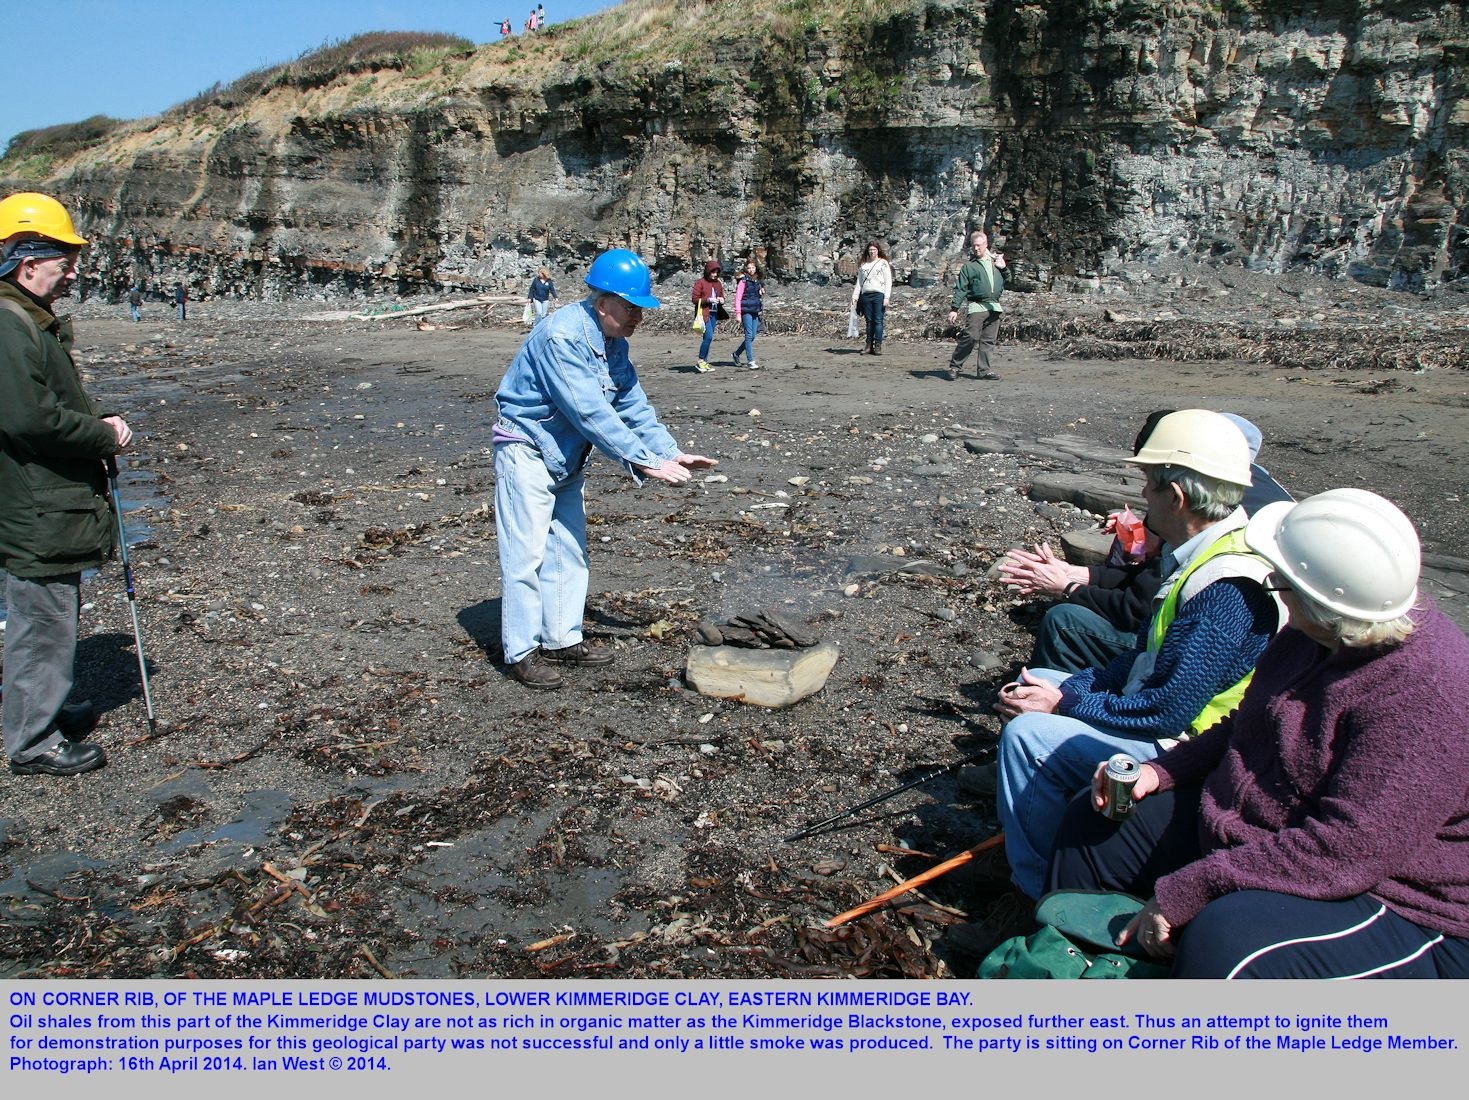 A lunch break for a field part at the eastern end of Kimmeridge Bay, Dorset, with some members sitting on Corner Rib, in the Maple Ledge Mudstone Member, 16th April 2014